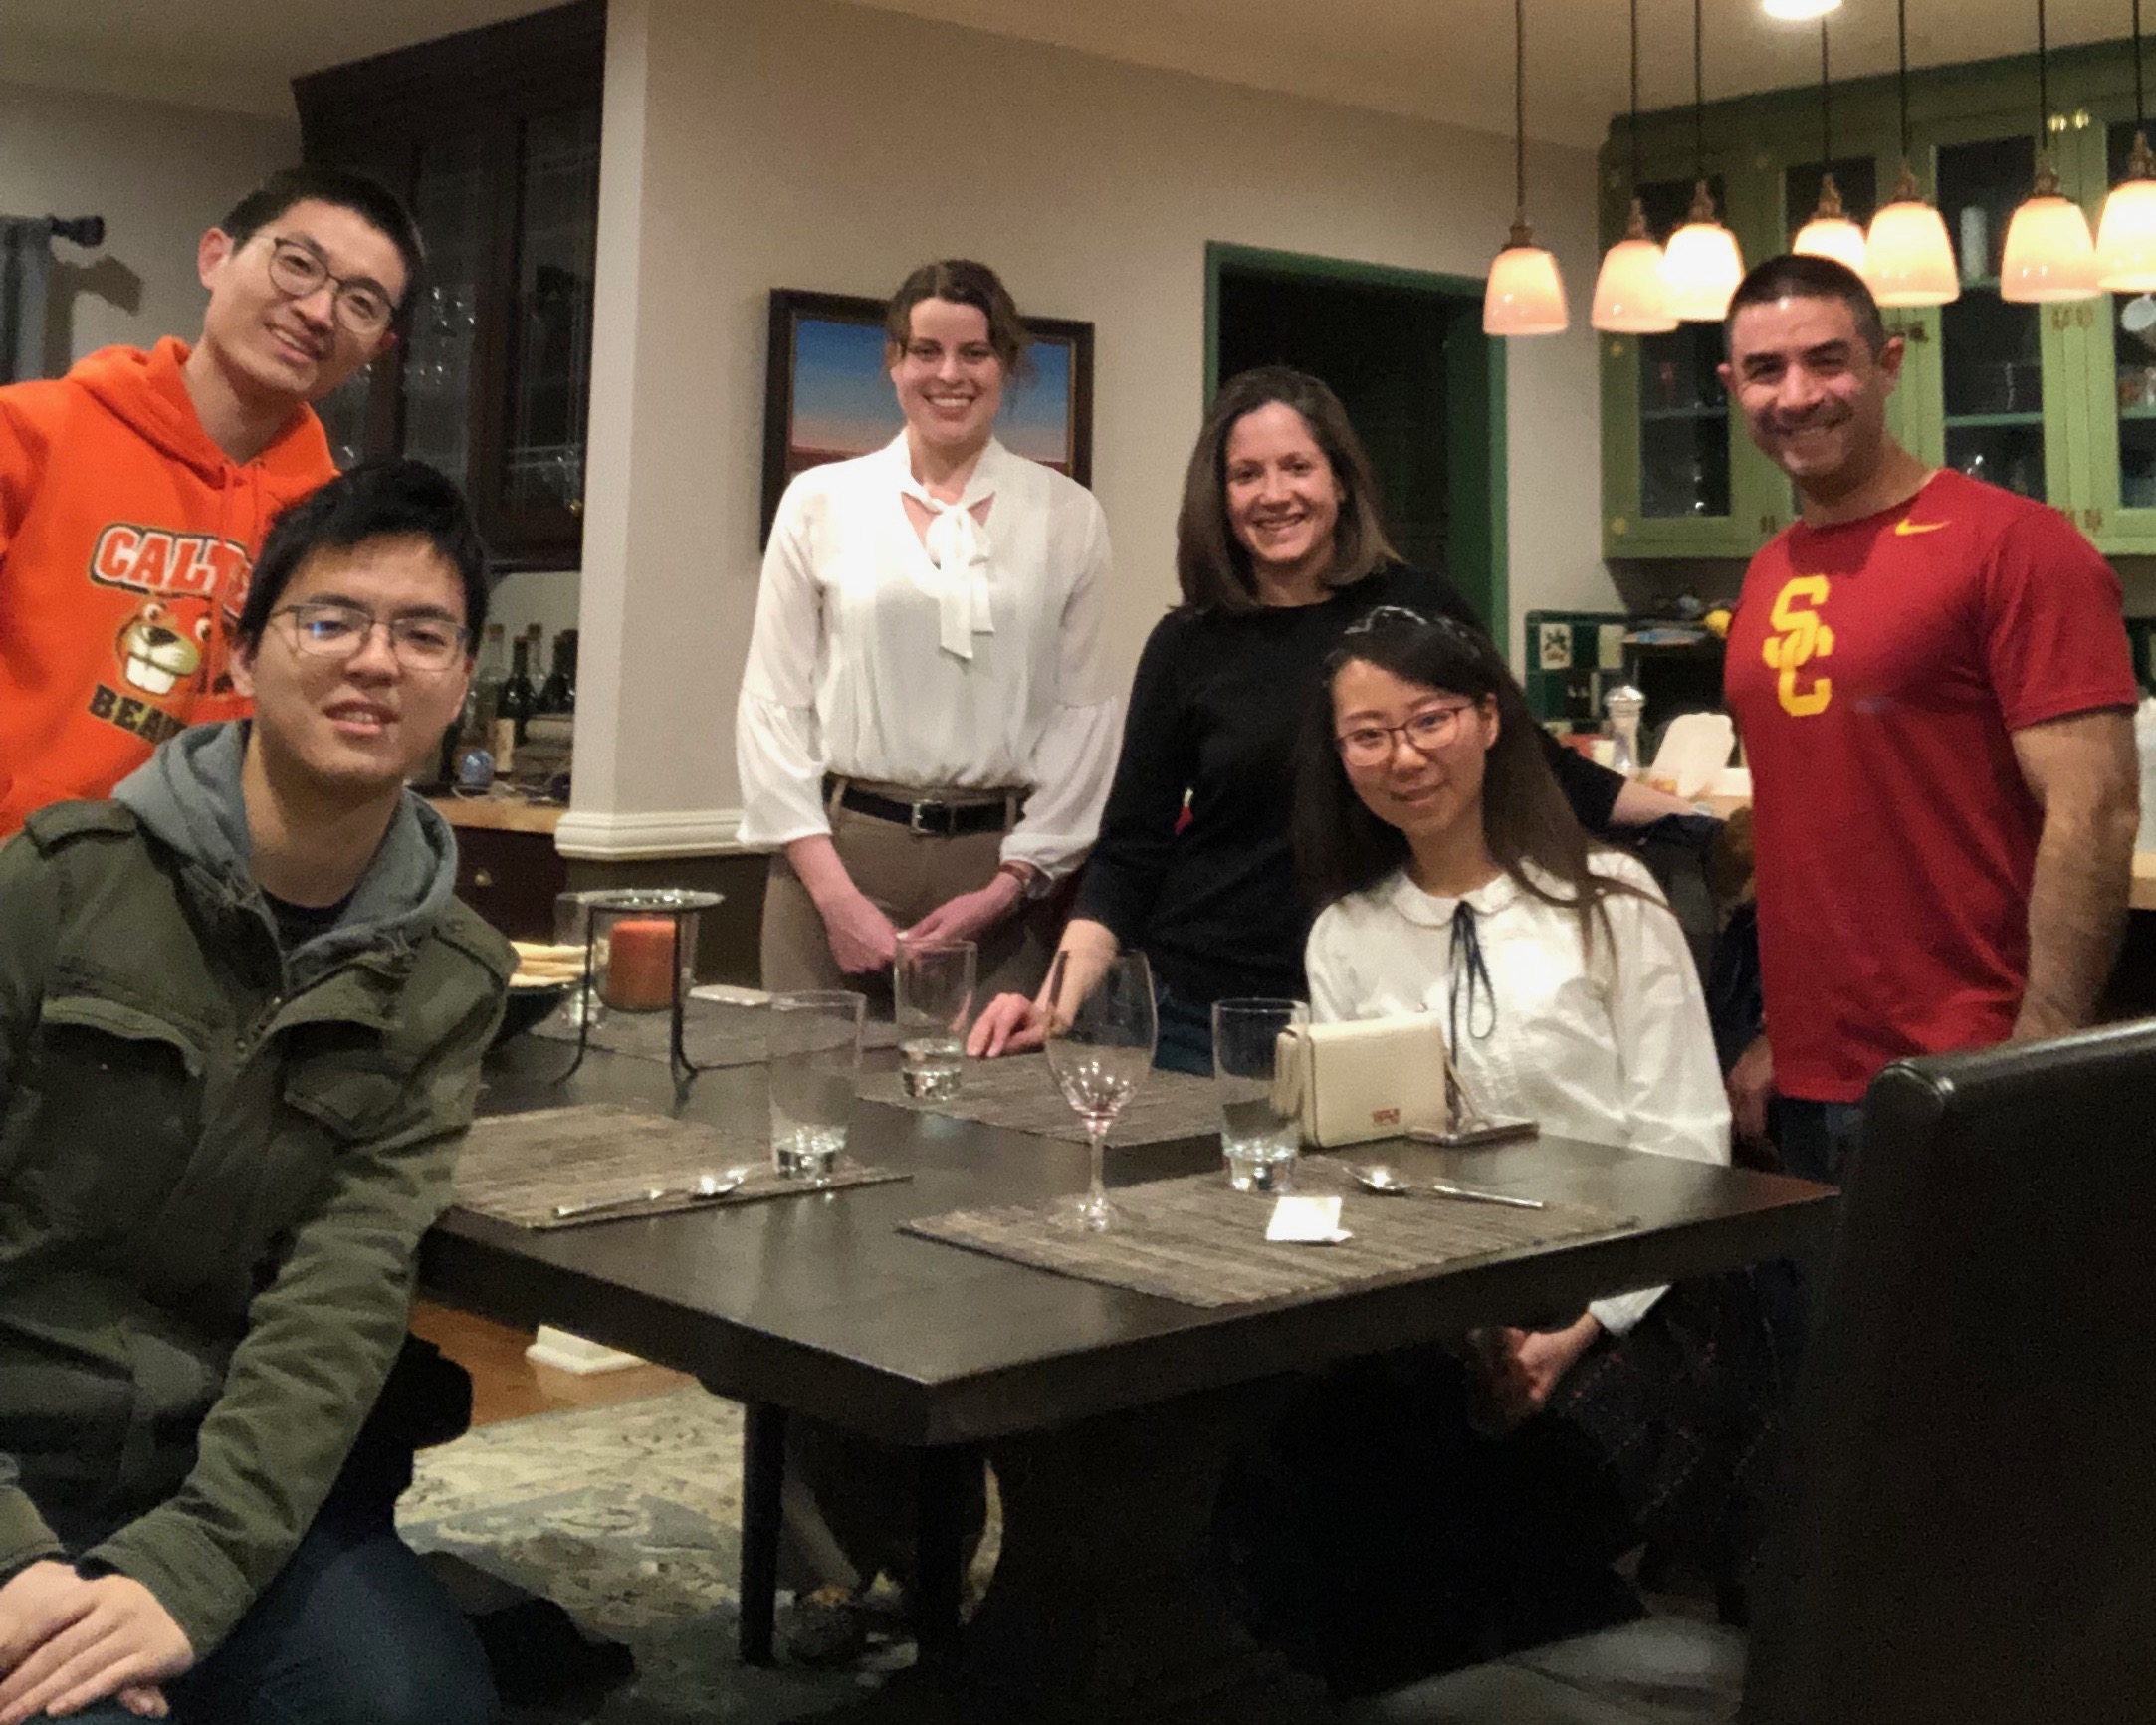 Deniz (MS '03, PhD '05) and Andrea Armani (MS '03, PhD '07) hosted 4 graduate students for dinner at their home in Pasadena on Saturday, February 23, 2019.